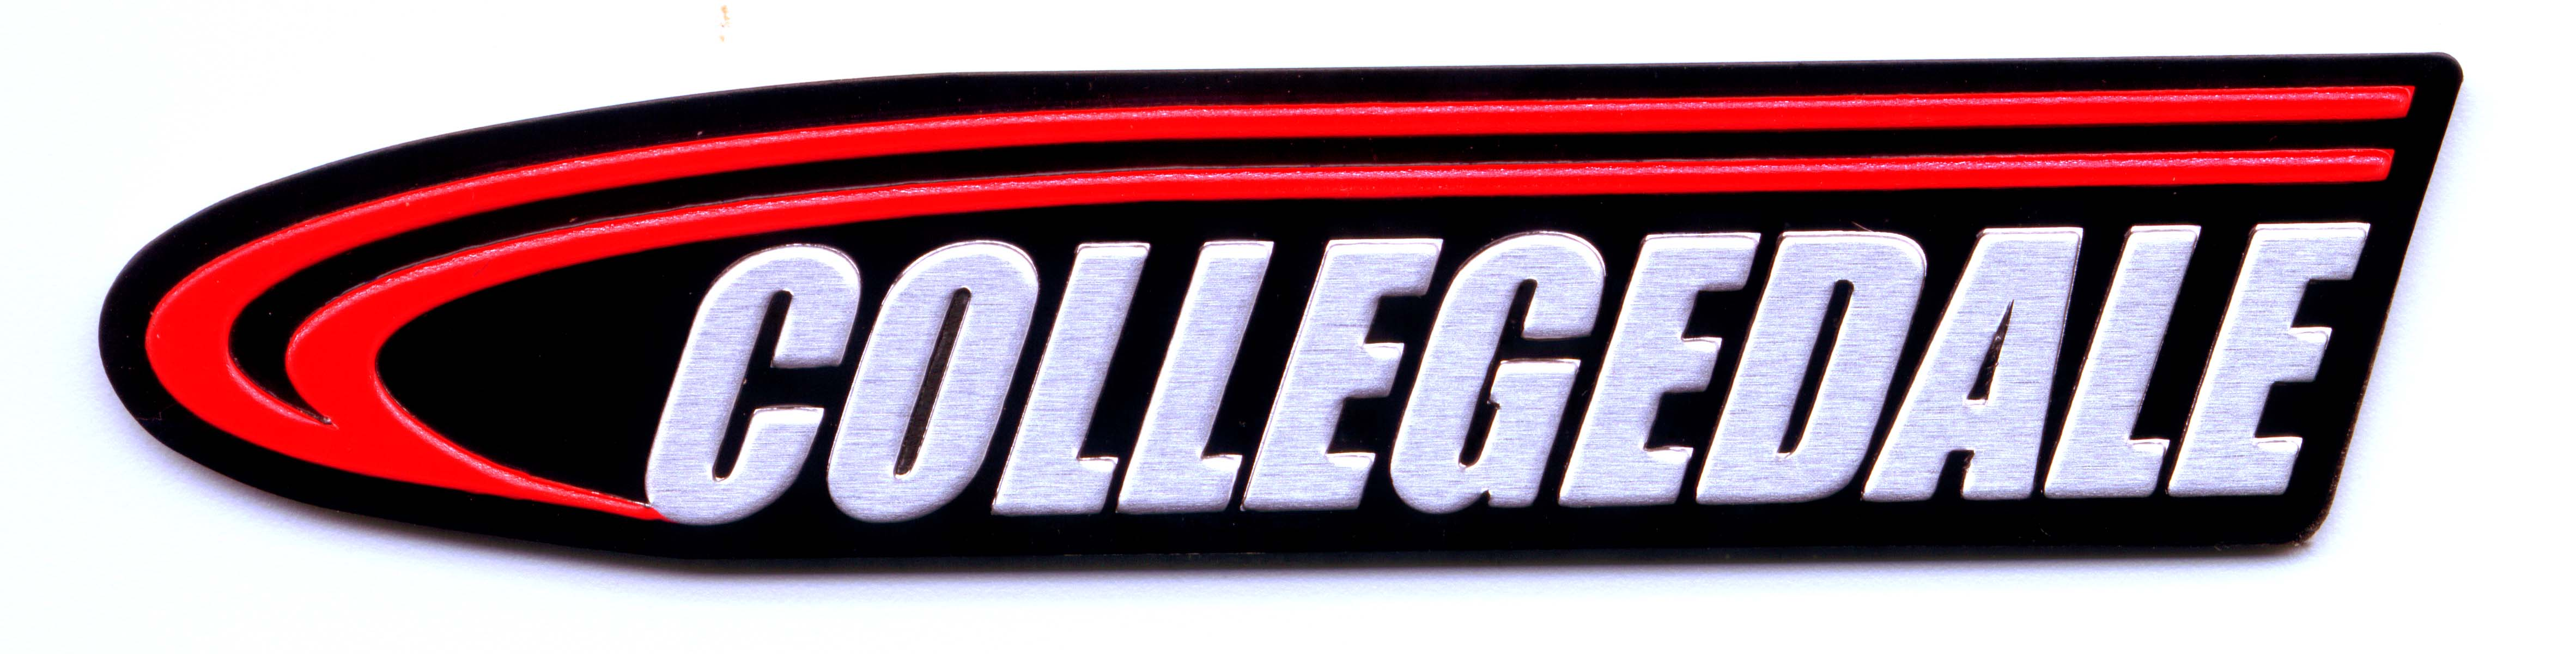 Collegedale Logo Creative Solutions